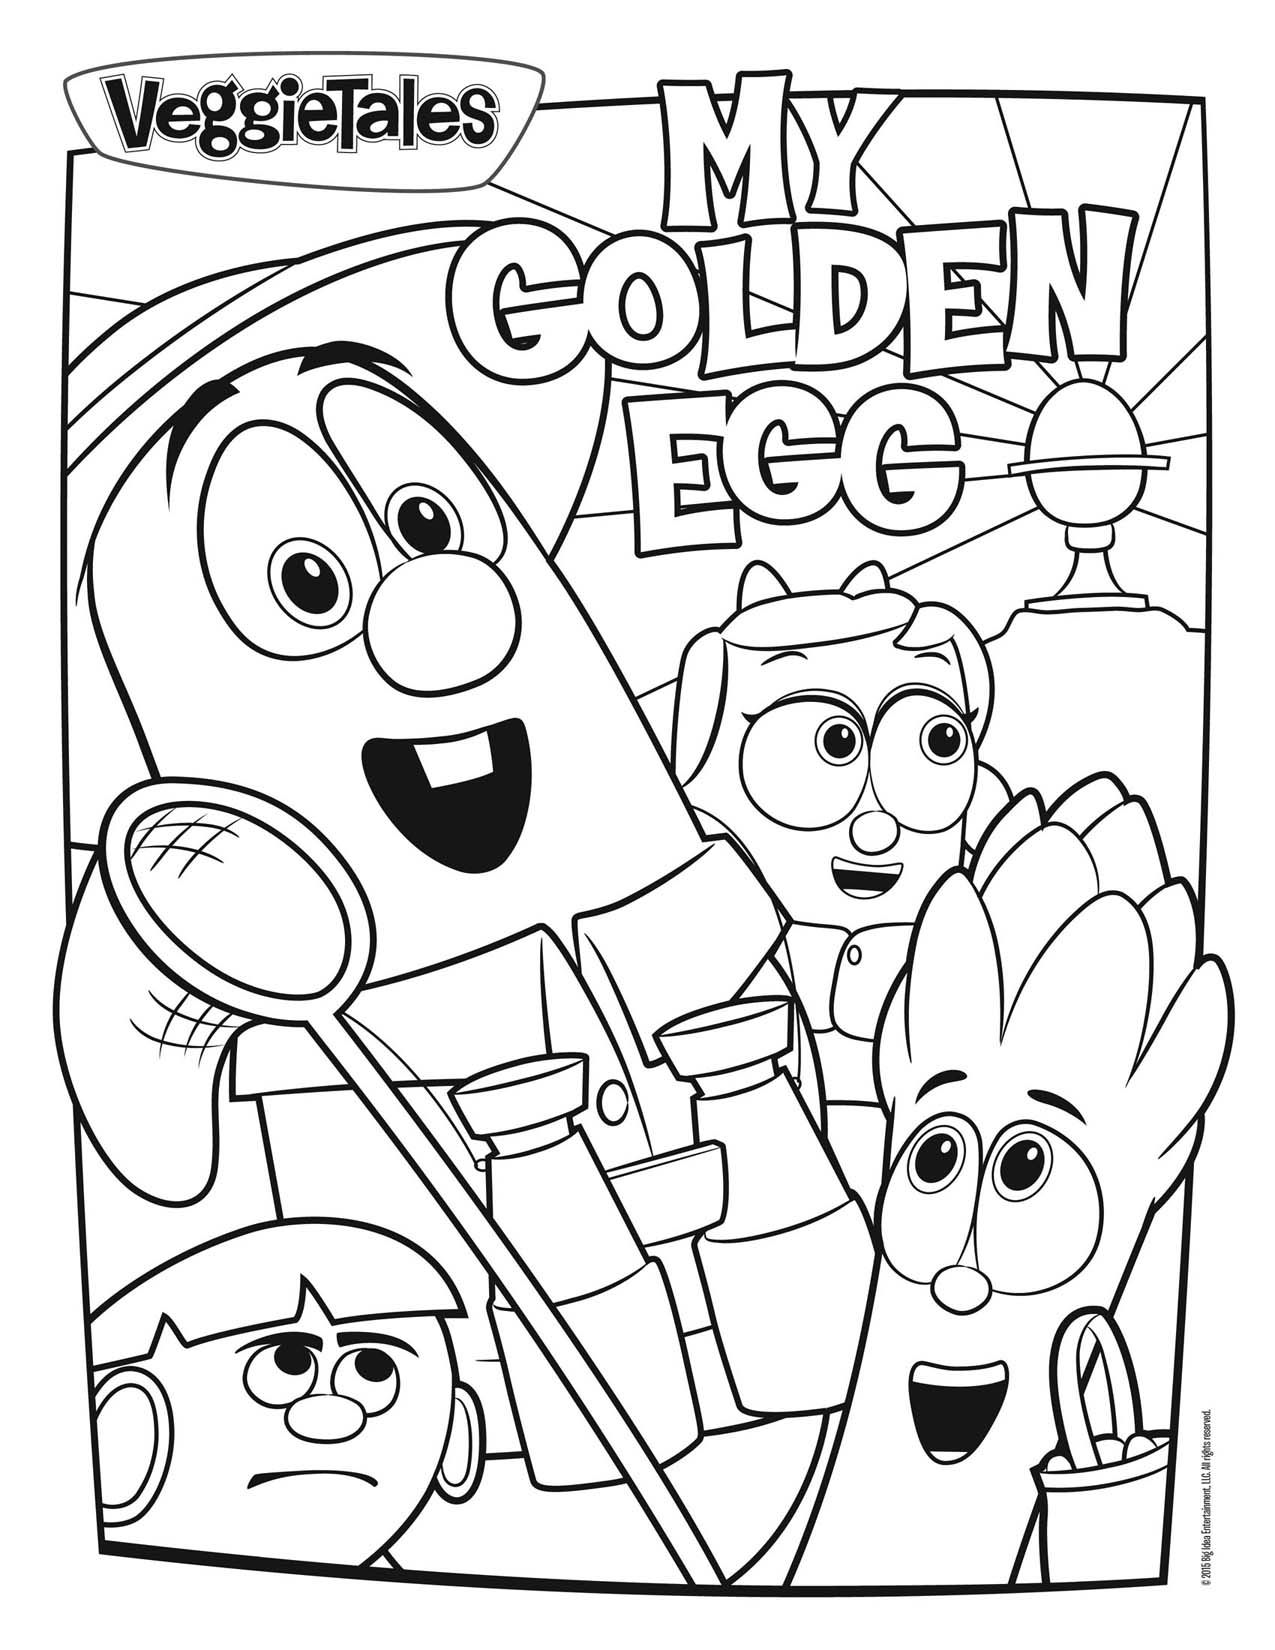 Veggie tales easter coloring pages coloring home for Veggie tales coloring pages